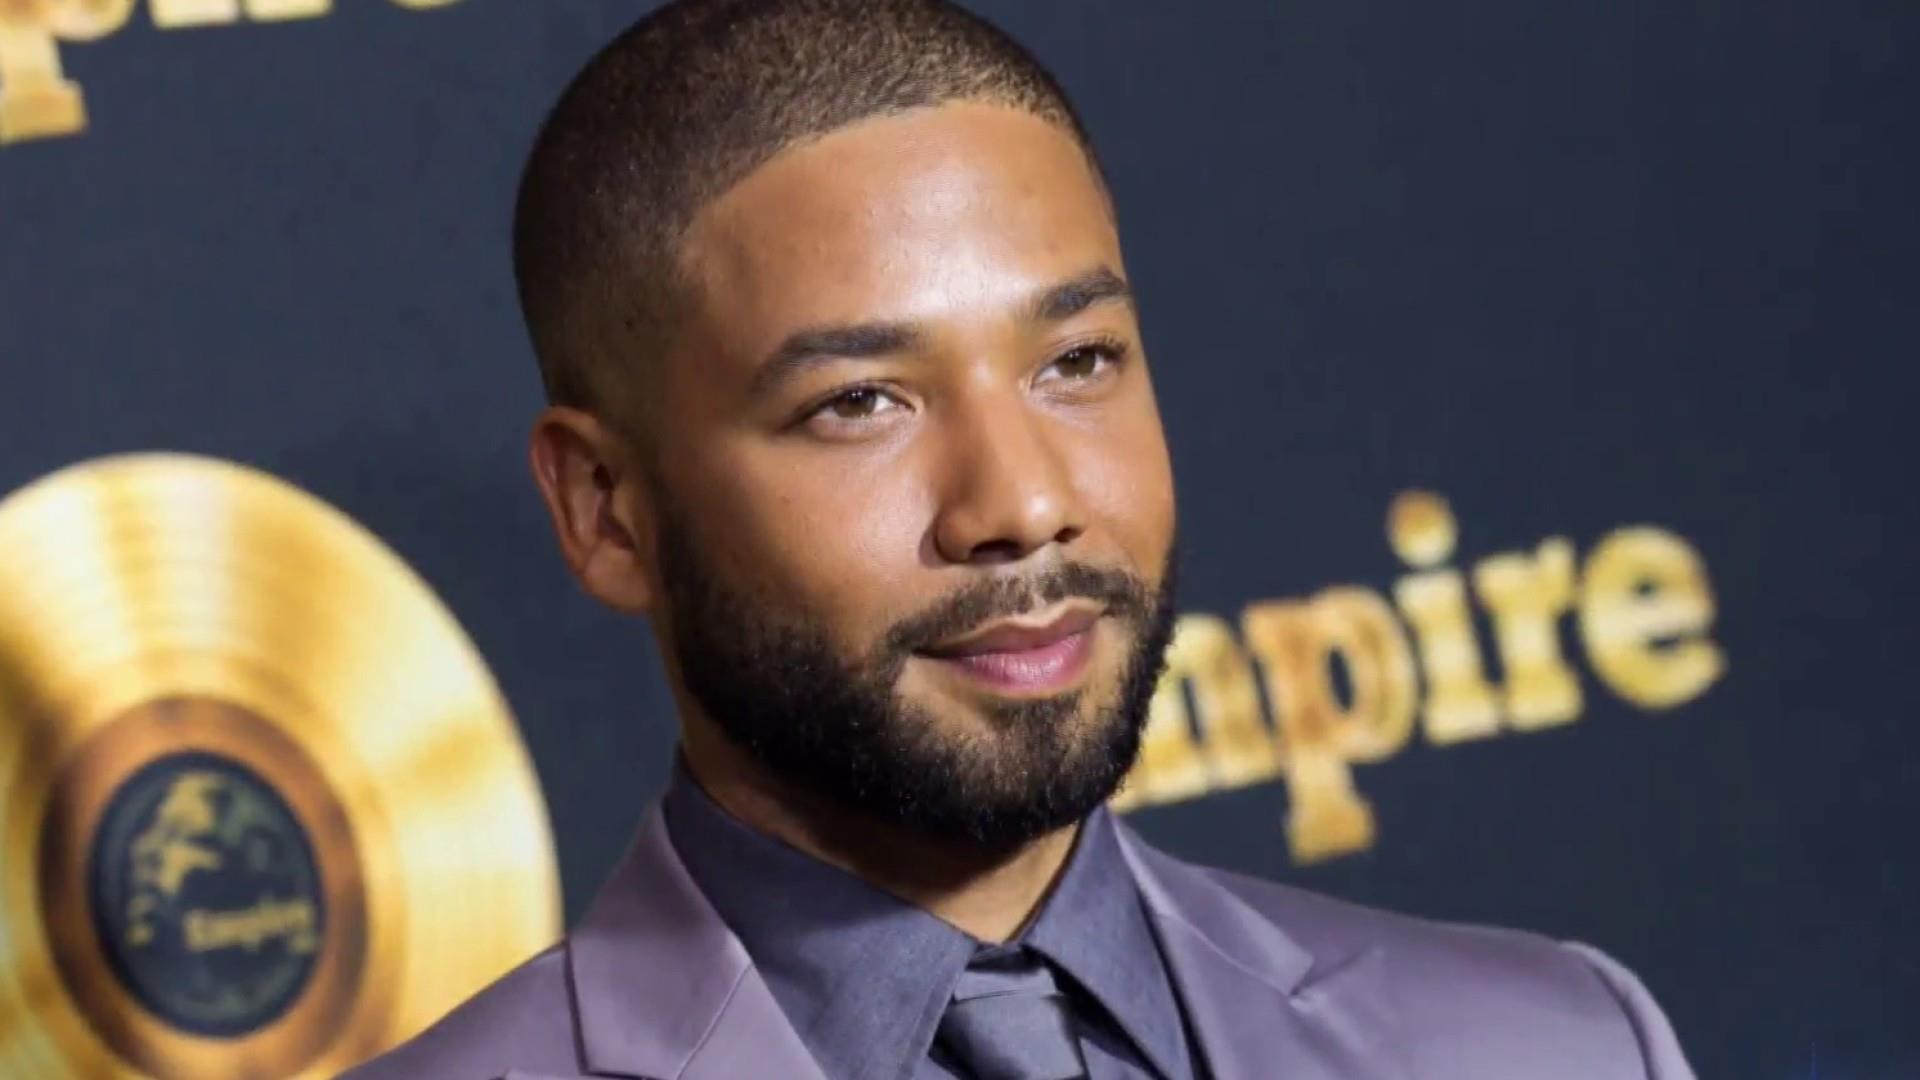 Jussie Smollett's 'Empire' character removed from final two episodes